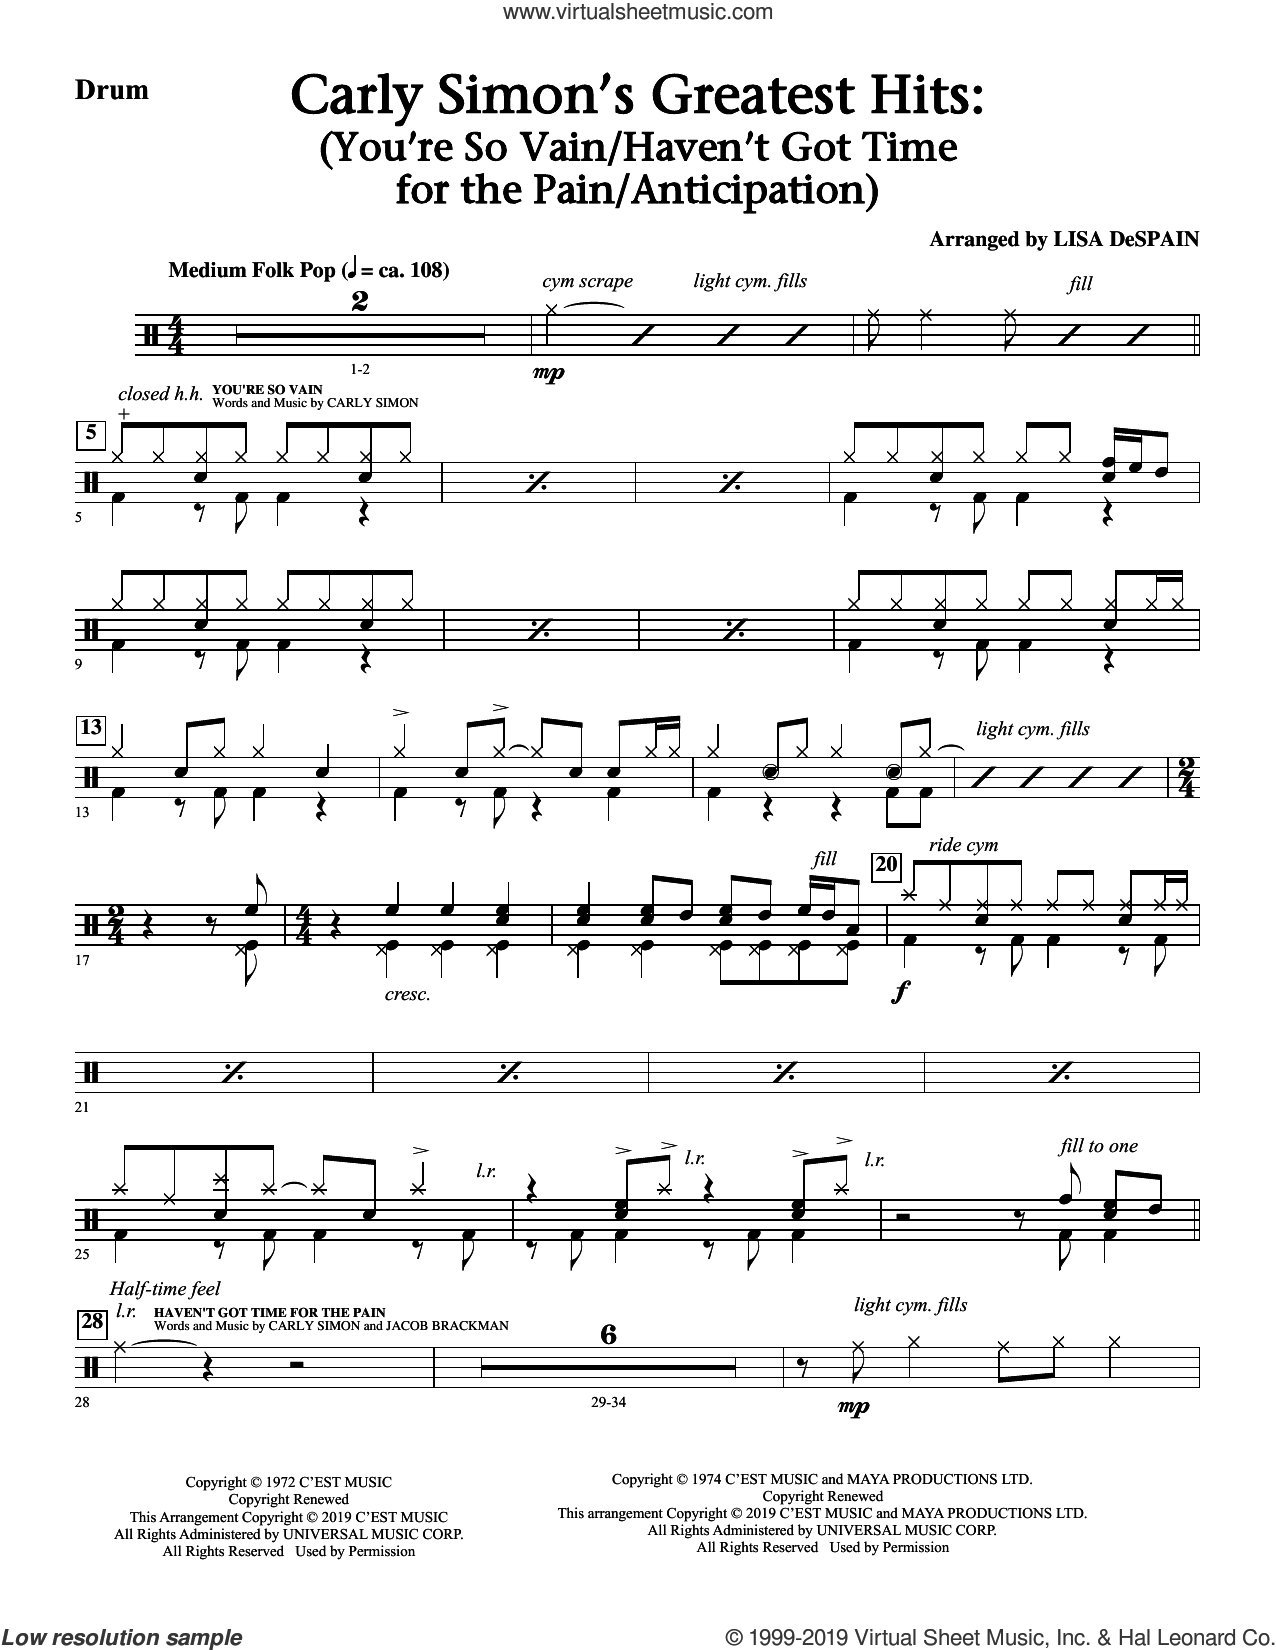 Carly Simon's Greatest Hits: A Choral Medley (arr. Lisa Despain) sheet music for orchestra/band (bass) by Carly Simon and Lisa DeSpain, intermediate skill level